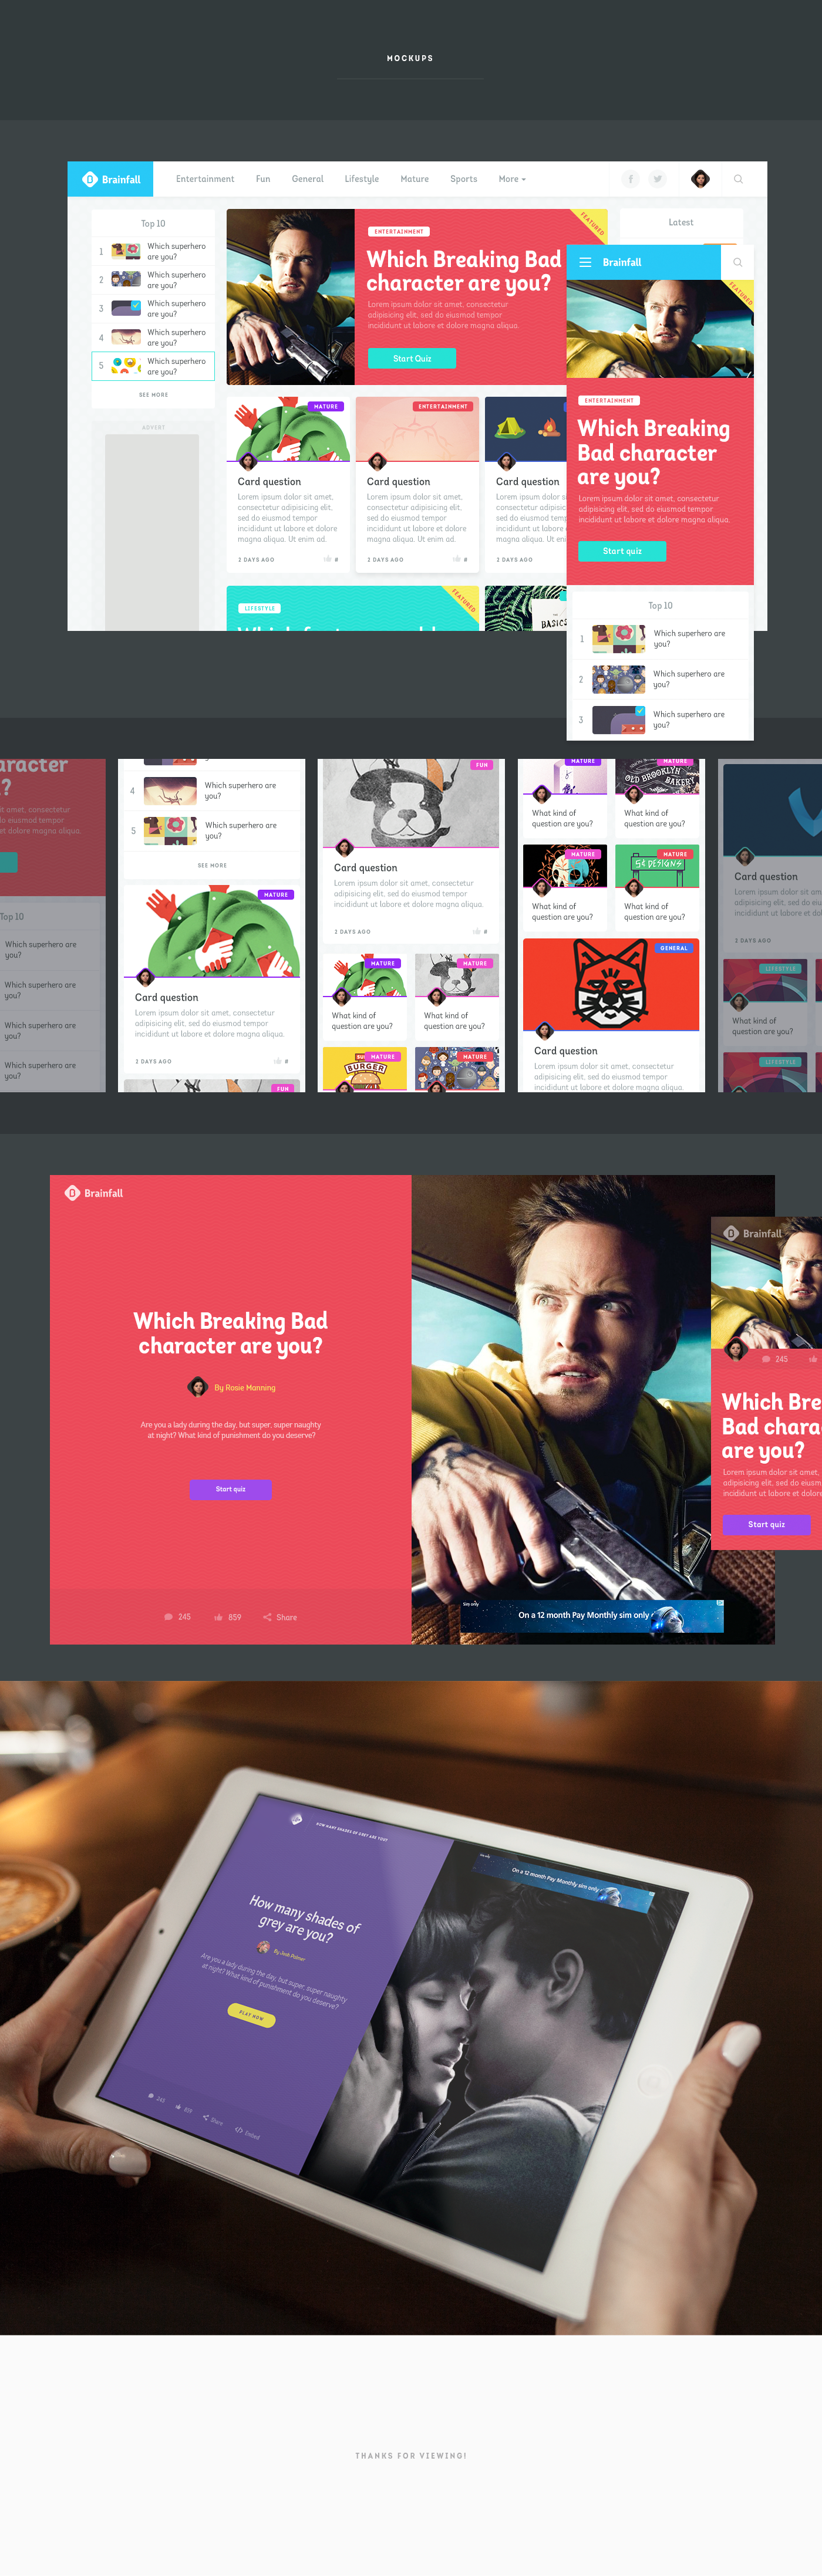 Brainfall Brand & Web by Rosie for Gravita on Dribbble